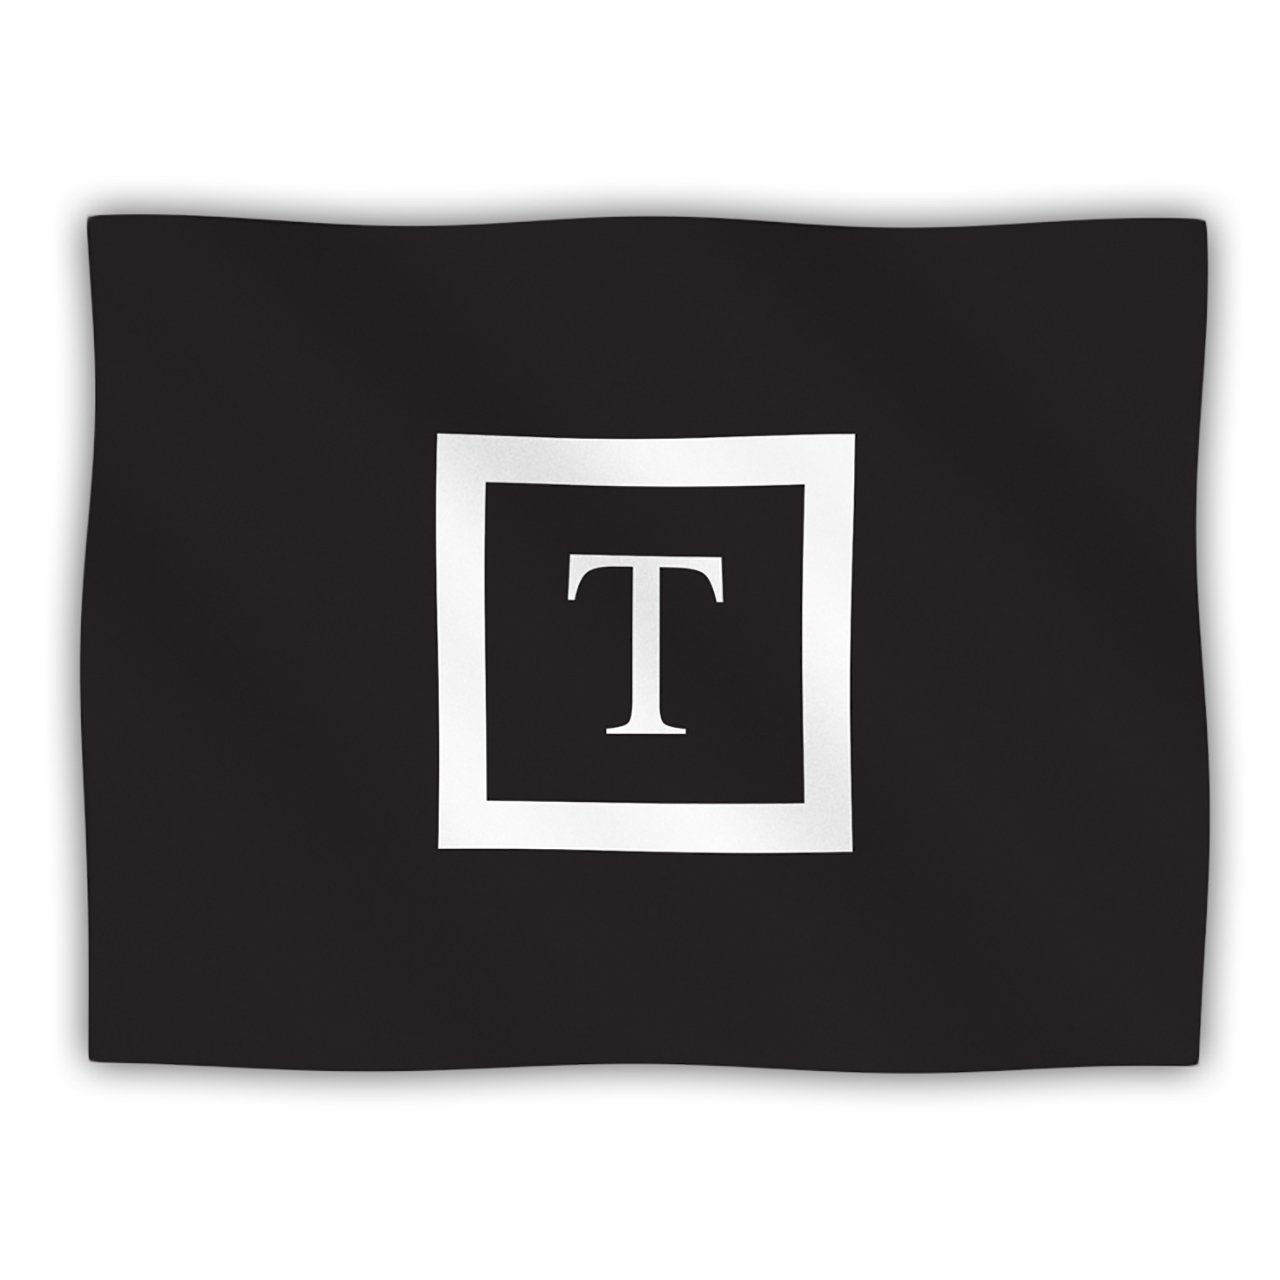 Kess InHouse Kess Original Monogram Solid Black Letter T  Pet Dog Blanket, 60 by 50-Inch